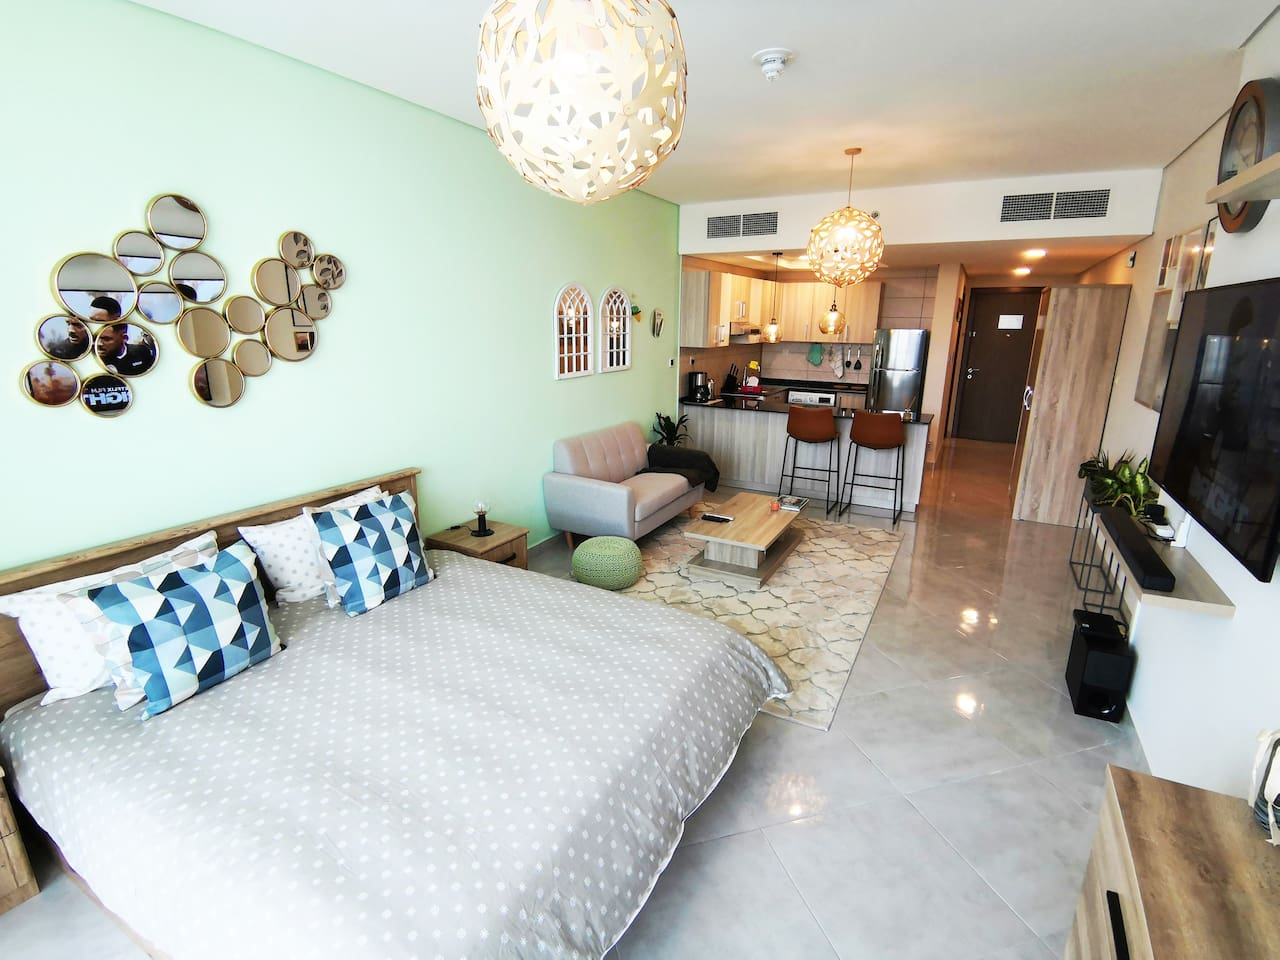 Stylish interior for a comfortable and productive stay